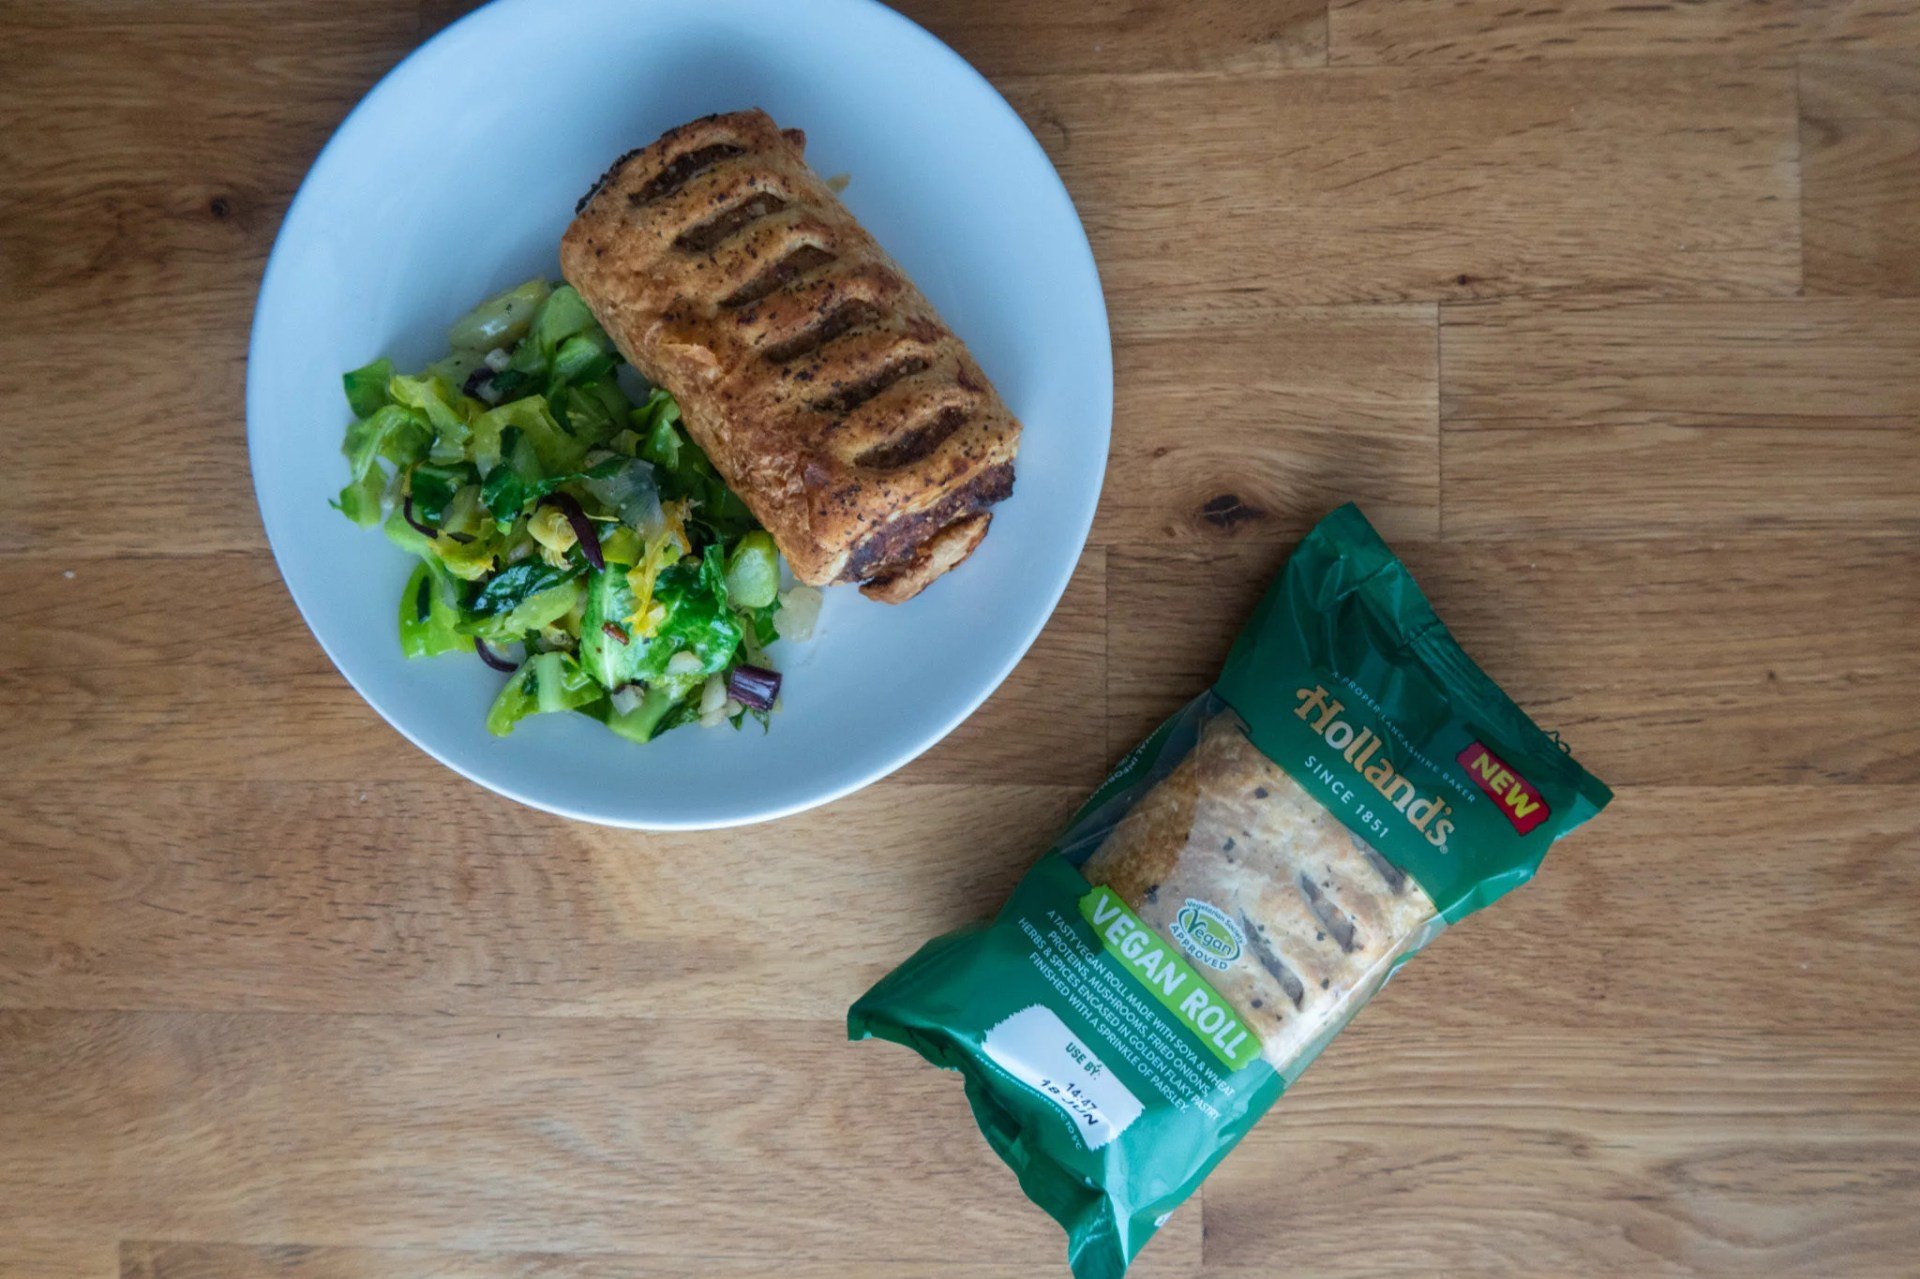 Holland's Vegan Pie on plate and in packaging